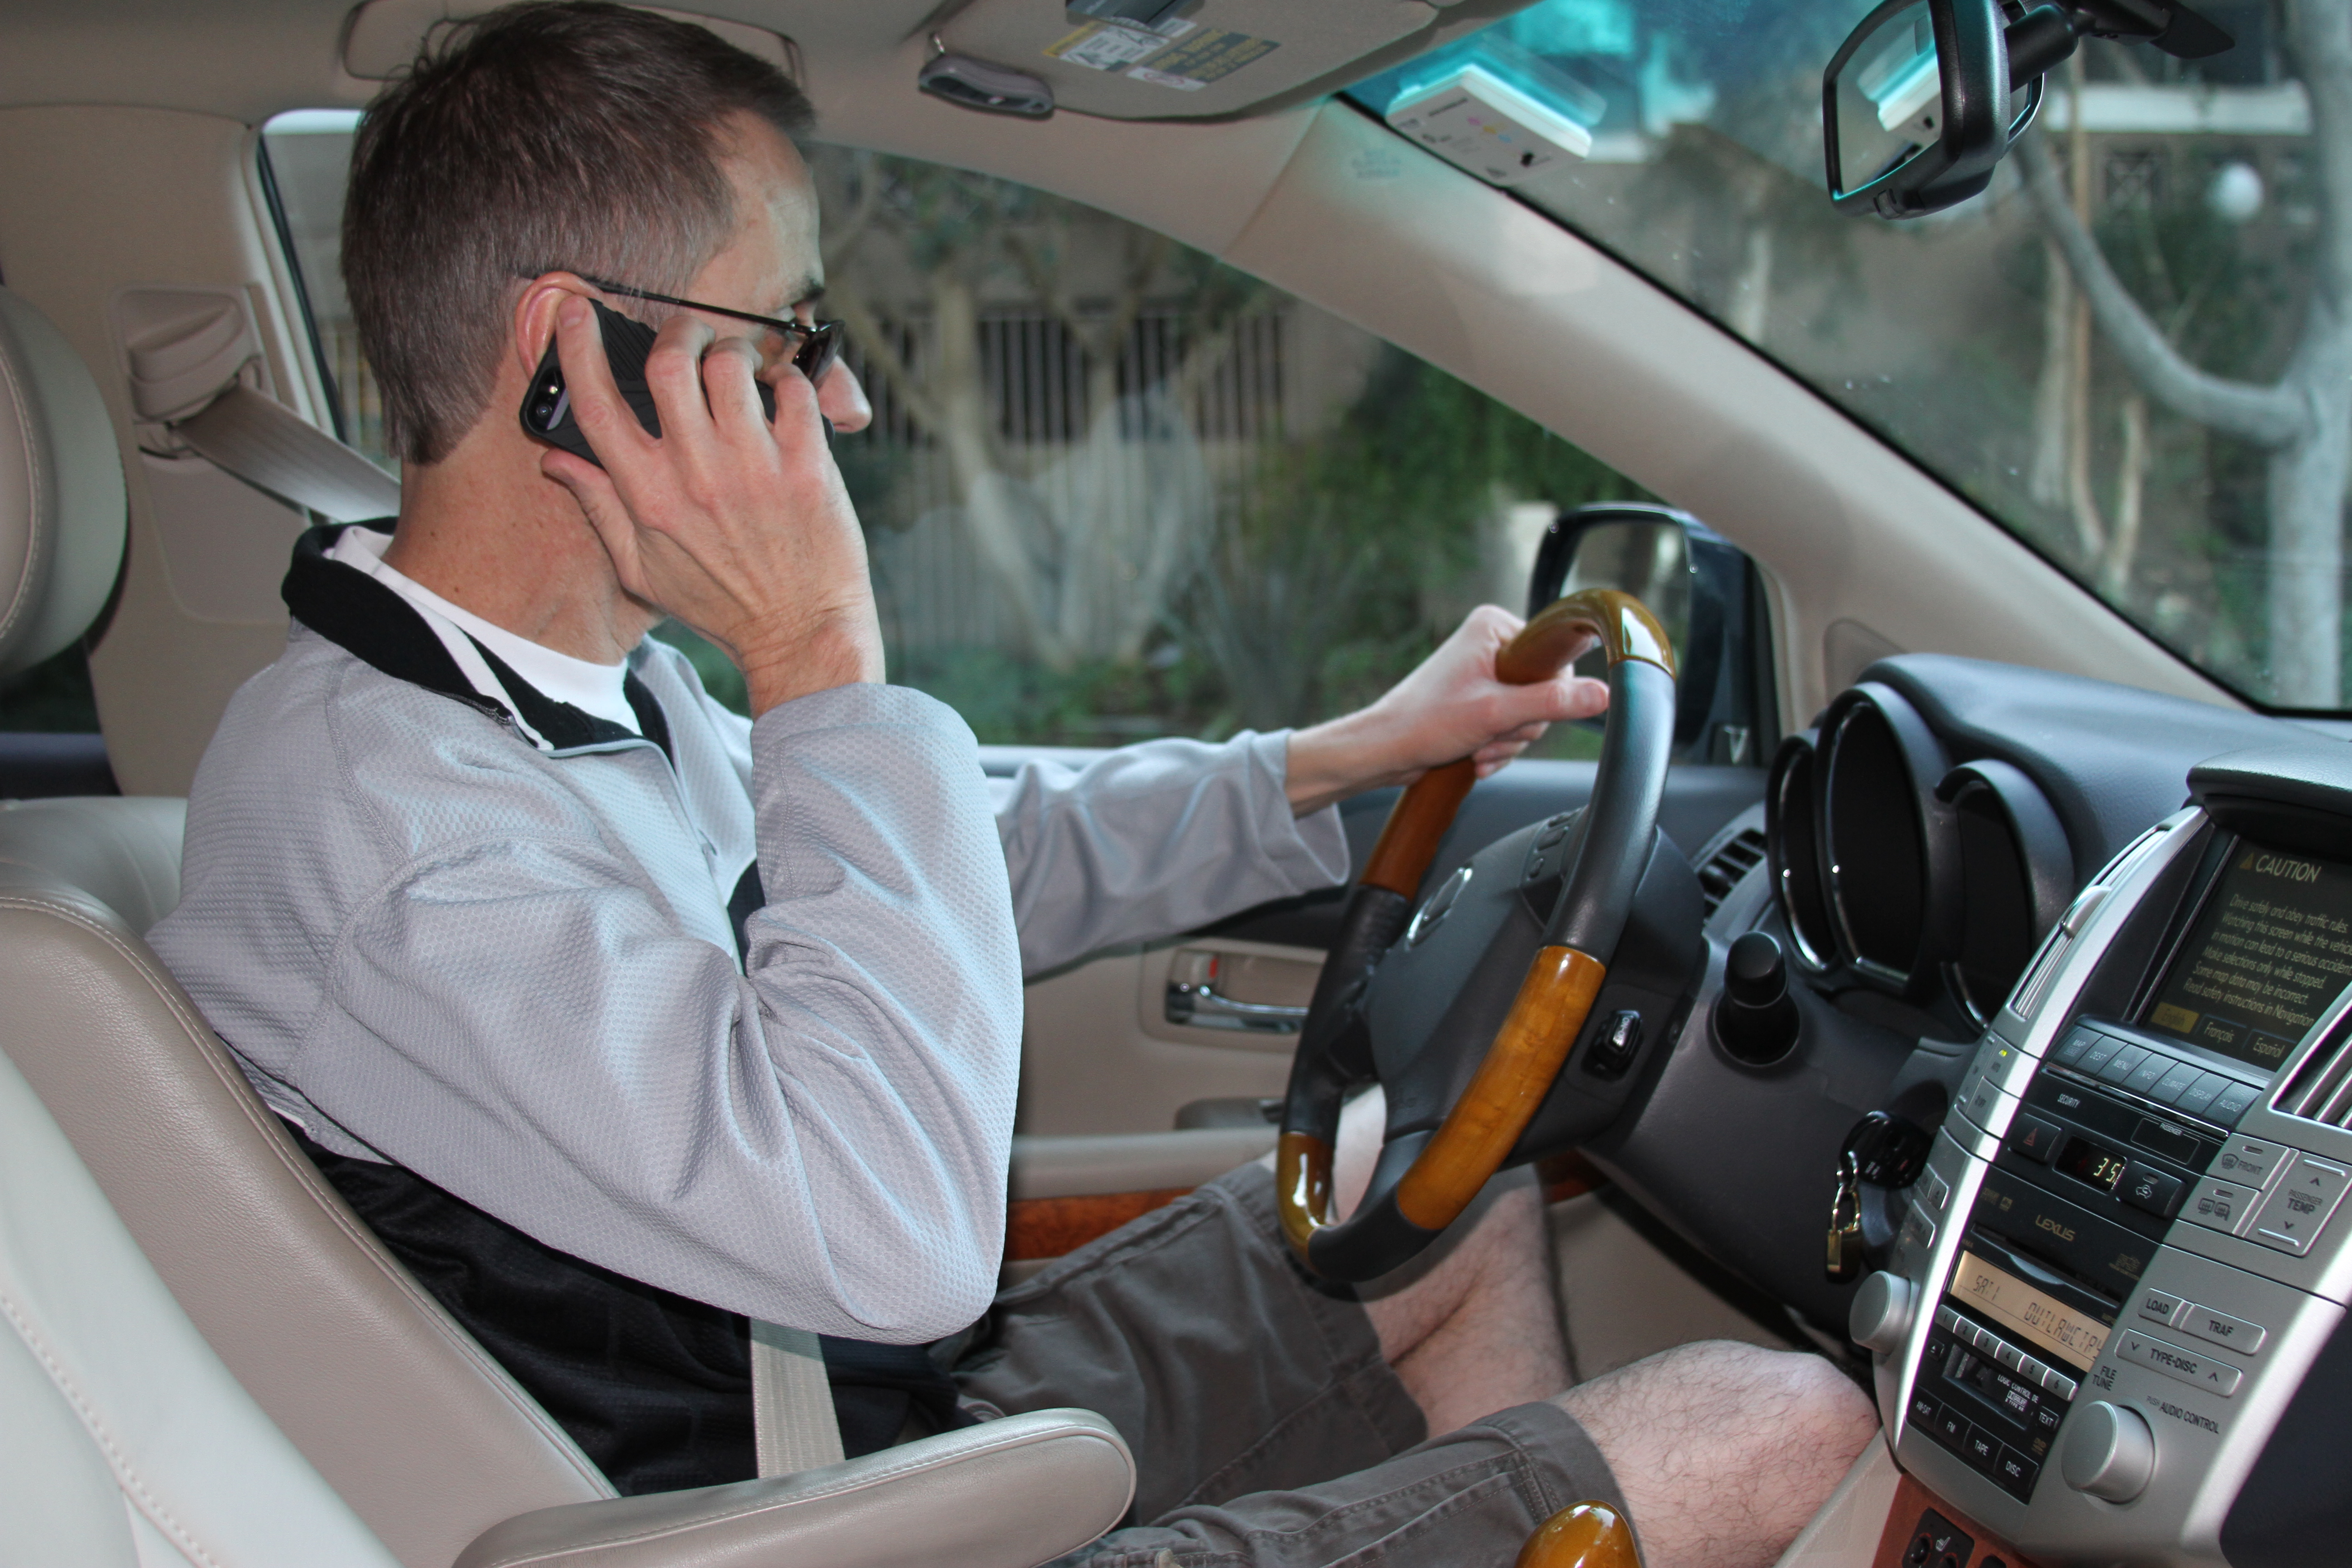 Fleet Managers Making Safety Greater Focus